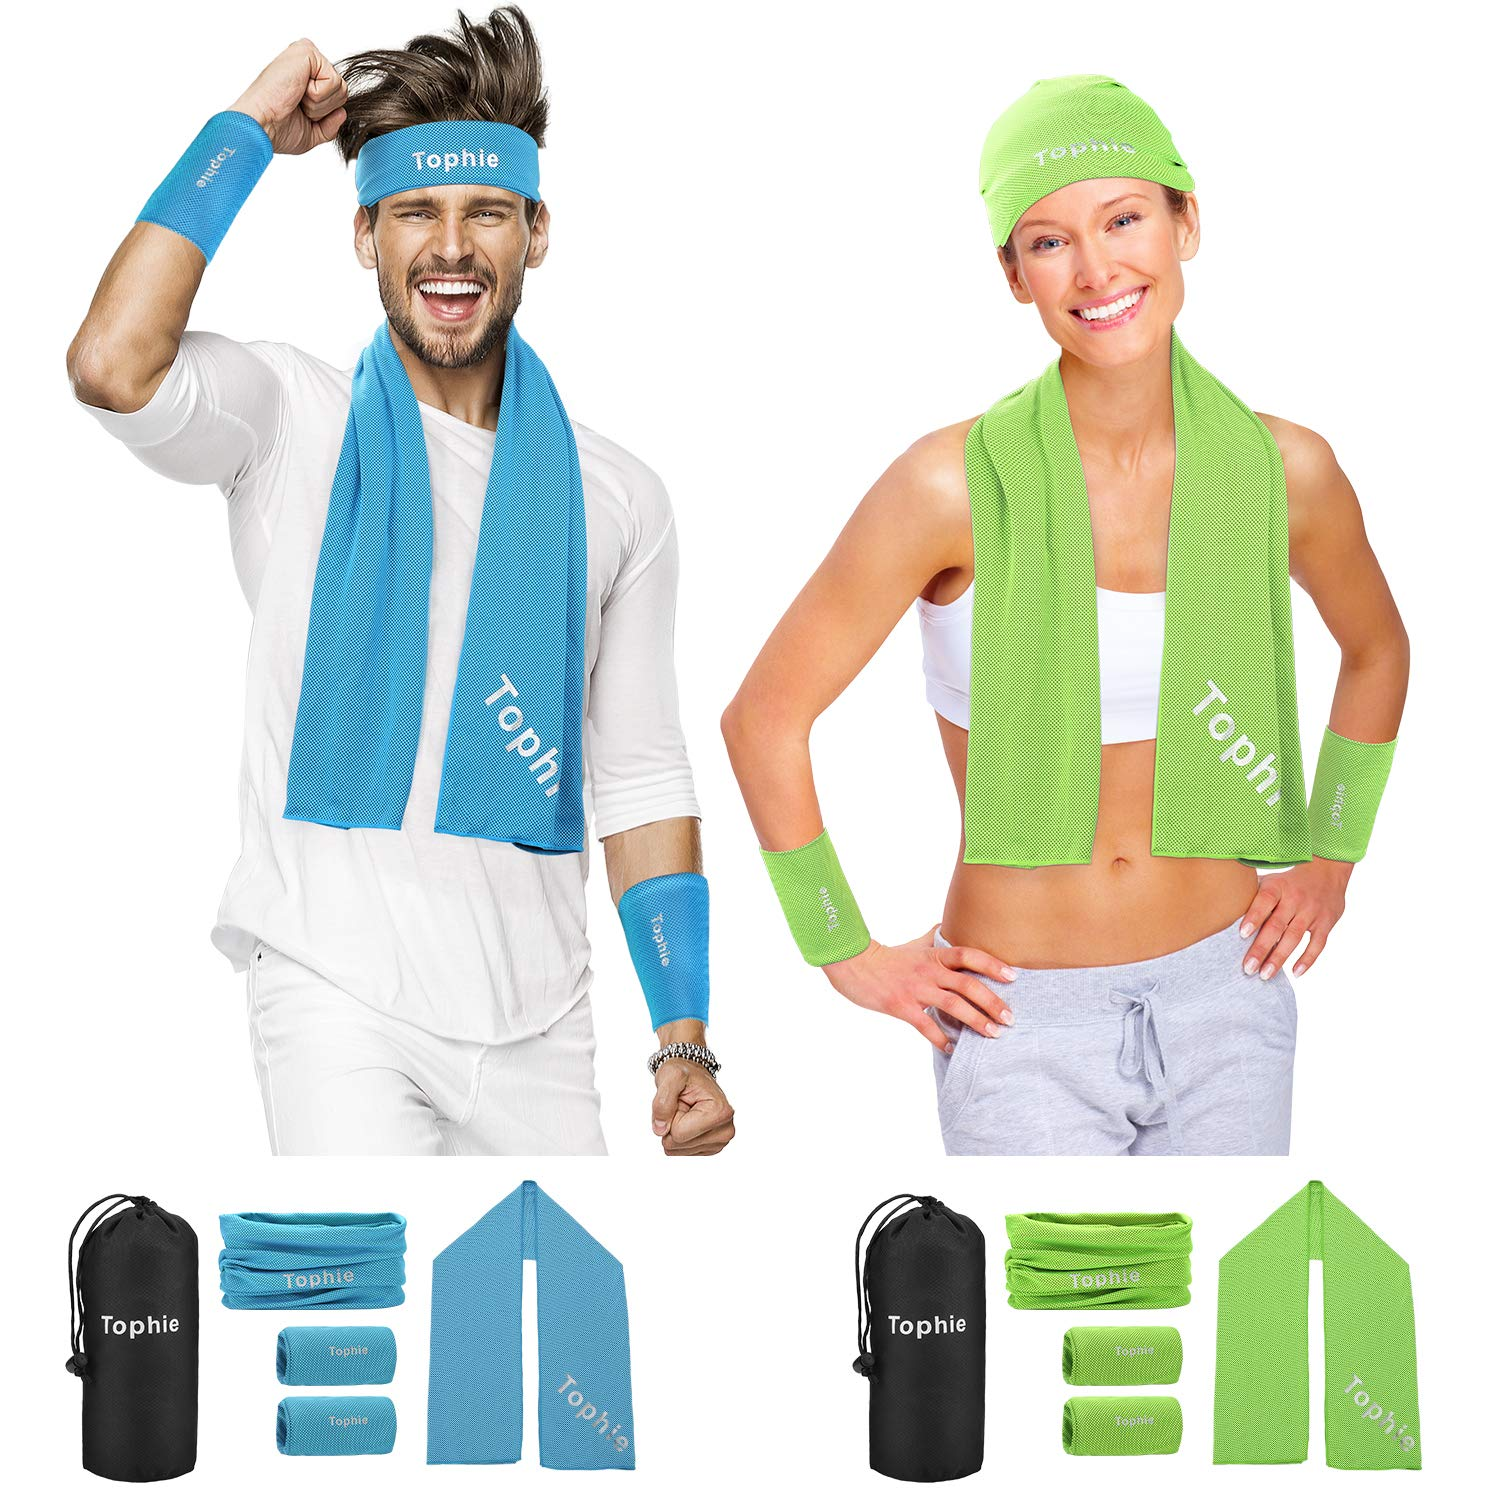 Cooling Towel Headbands Neck Wrap Wristbands Set for Man and Women, Microfiber Ice Towel for All Activities. Keep Cool Scarf for Workout, Gym, Yoga,Travel,Golf with UV Resistence Function